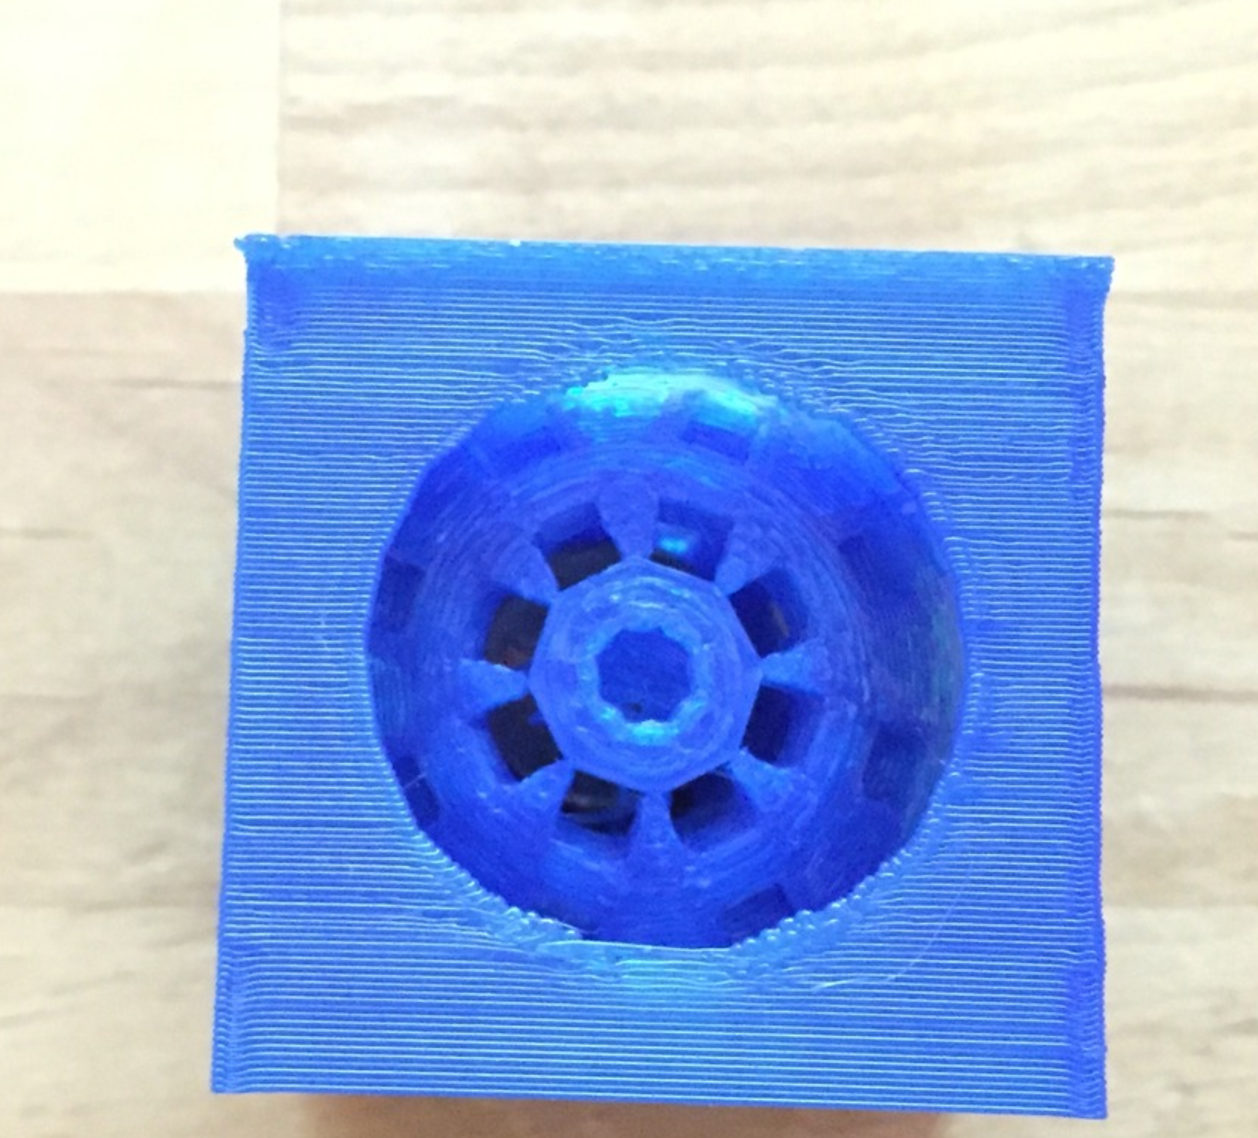 Capture d'écran 2017-05-09 à 17.43.11.png Download free STL file Present: movable ball in a cube made with tinkercad with tutorial • 3D printable model, squiqui